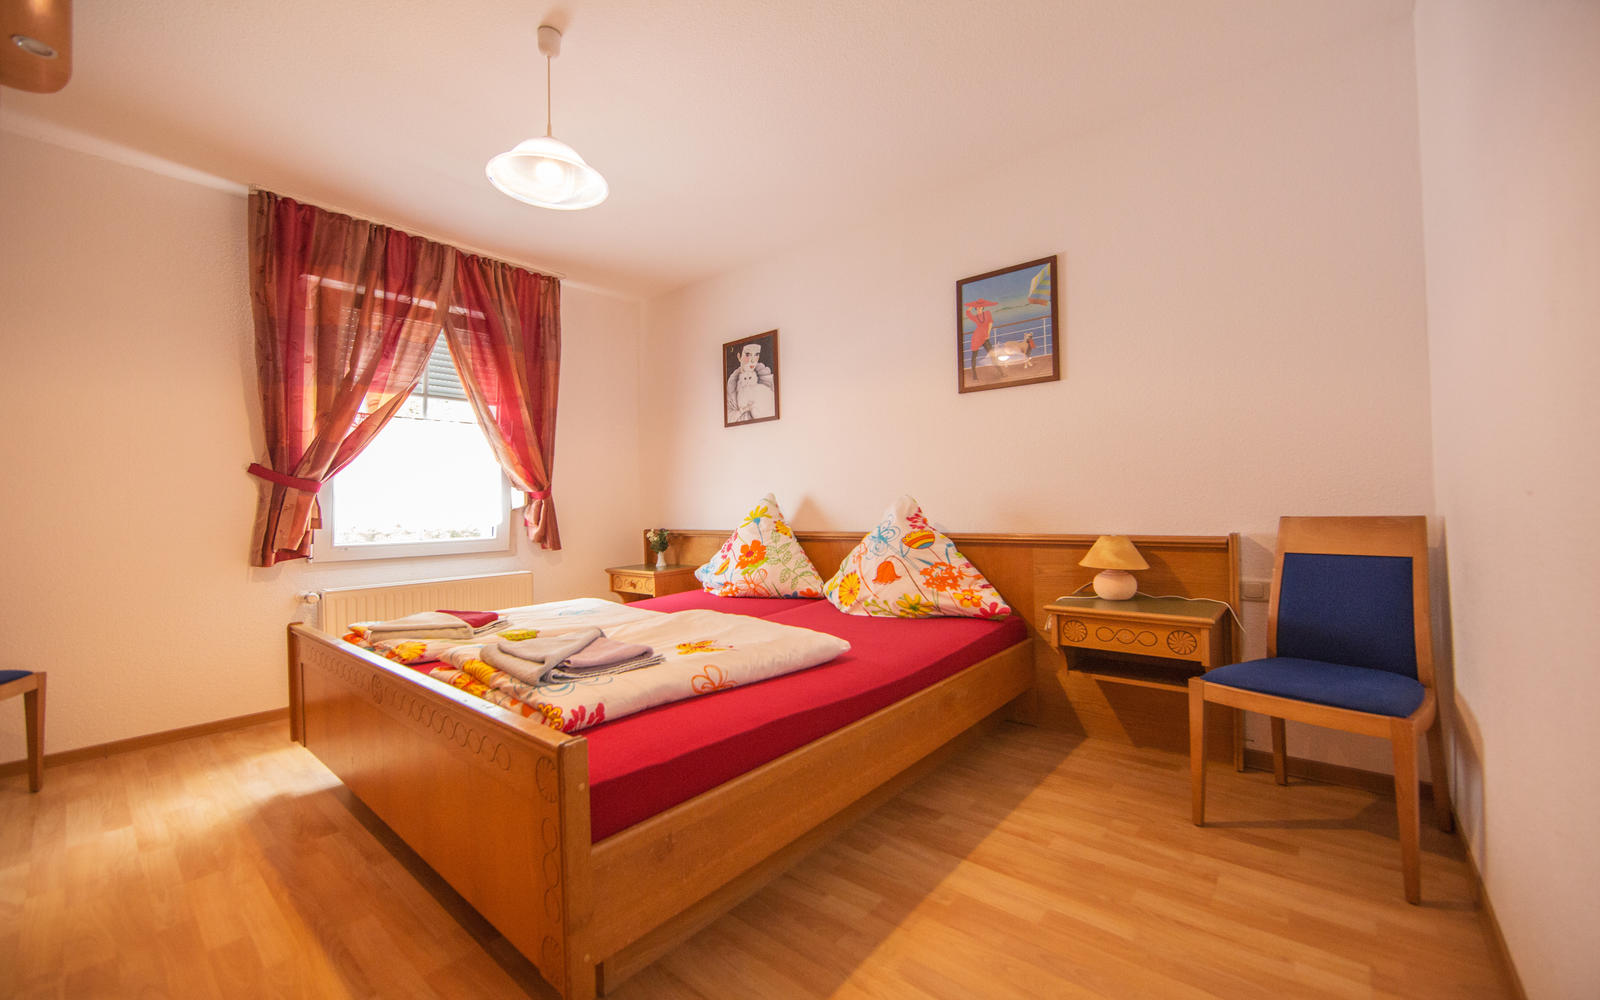 The beautiful Burghof guesthouse provide a comfortable stay in the district of Vicht von Stolberg. With us, you can relax and rest at a competitive price.